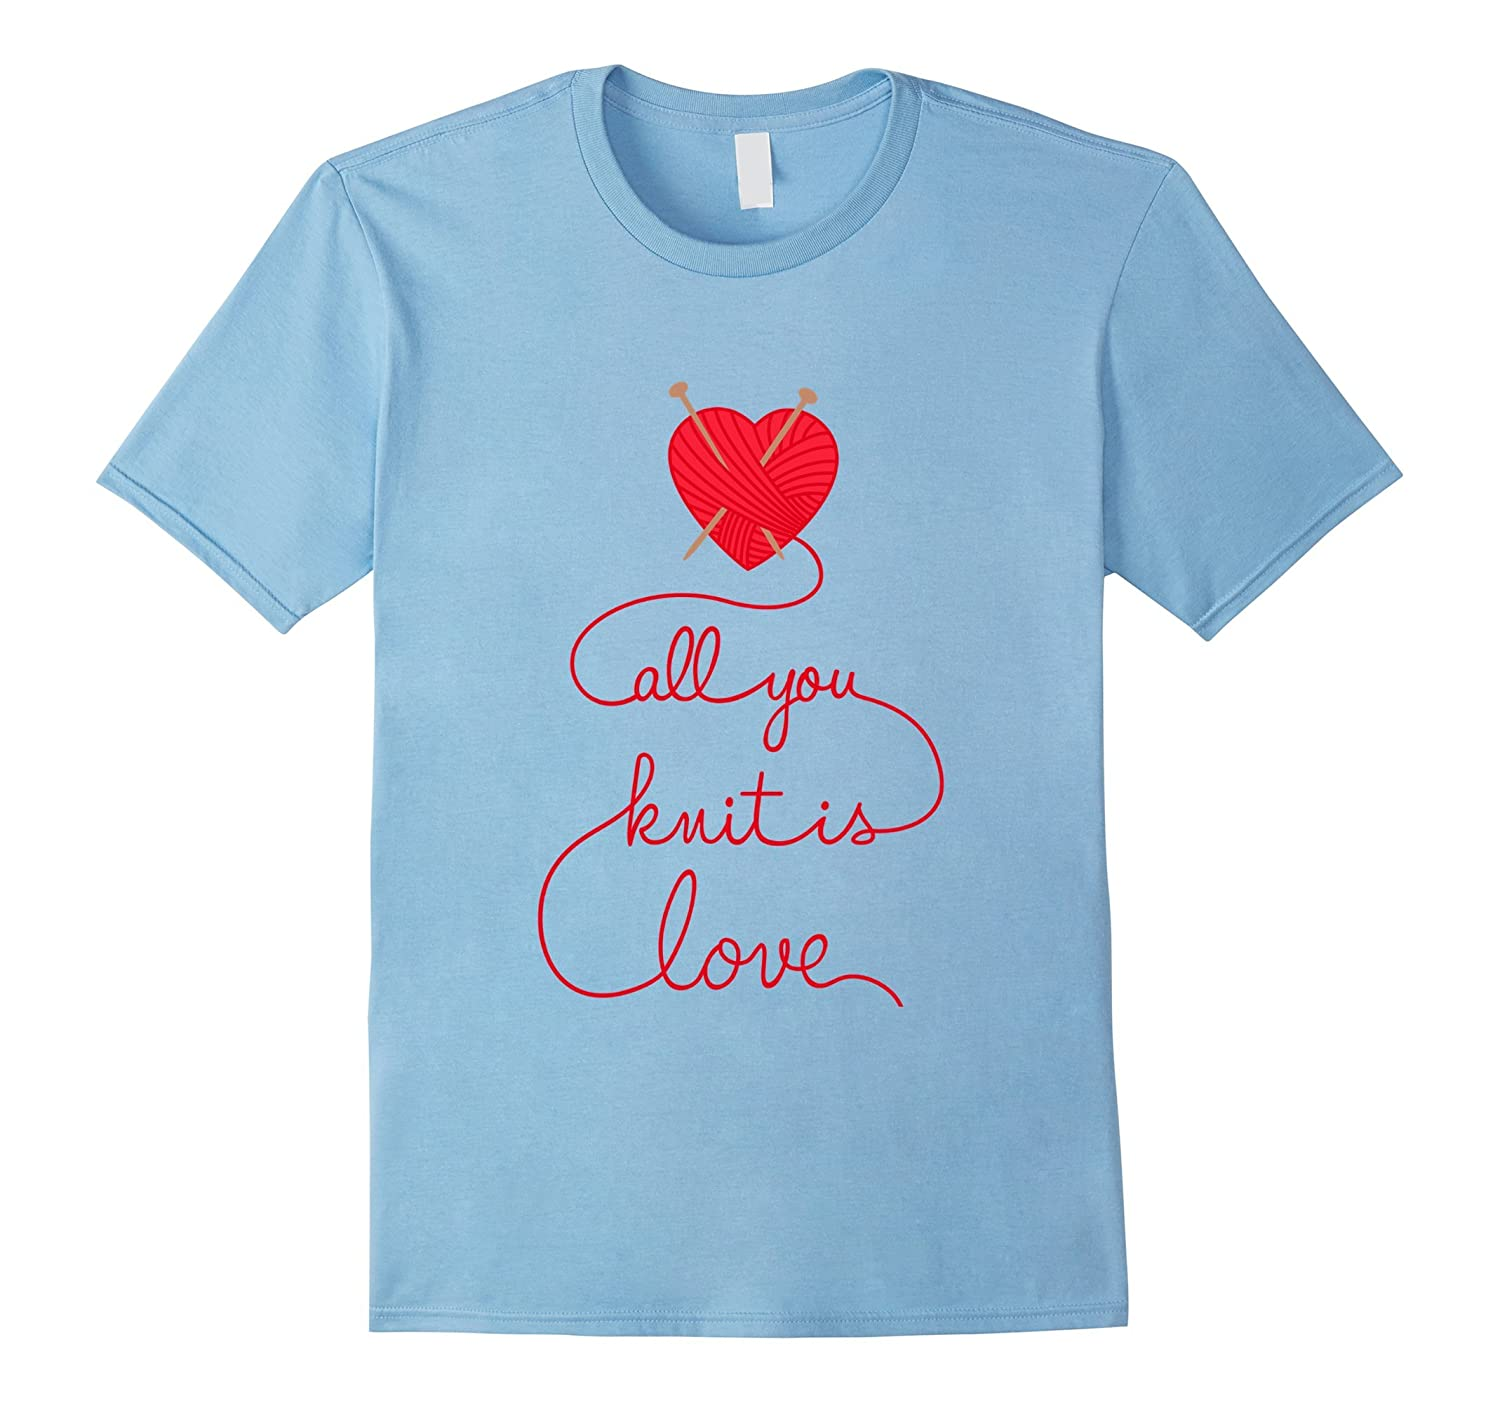 All You Knit is Love The Tshirt for Knitting Lovers-TD